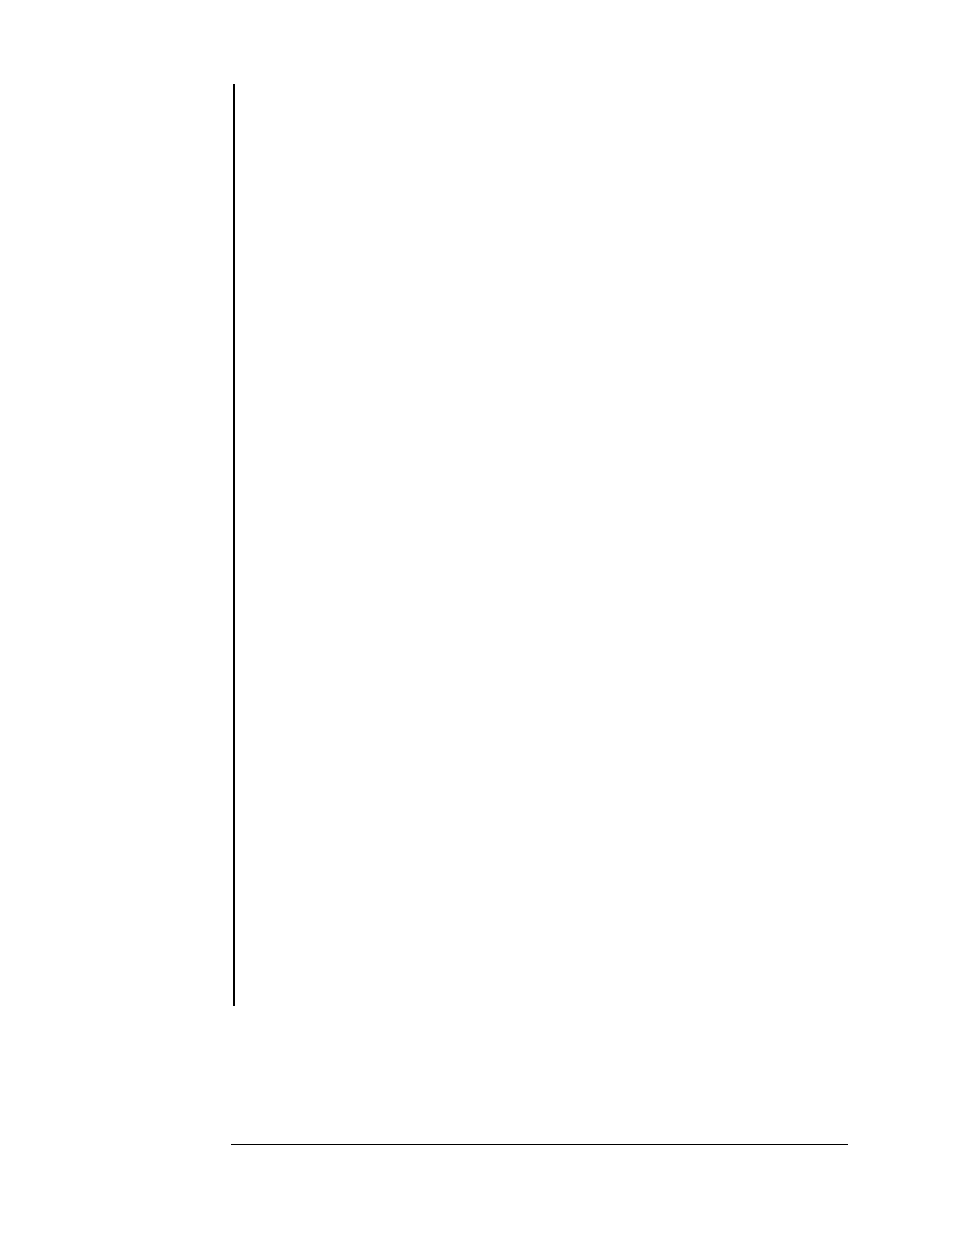 Section 4.3, Material reference table, Bulk density and z